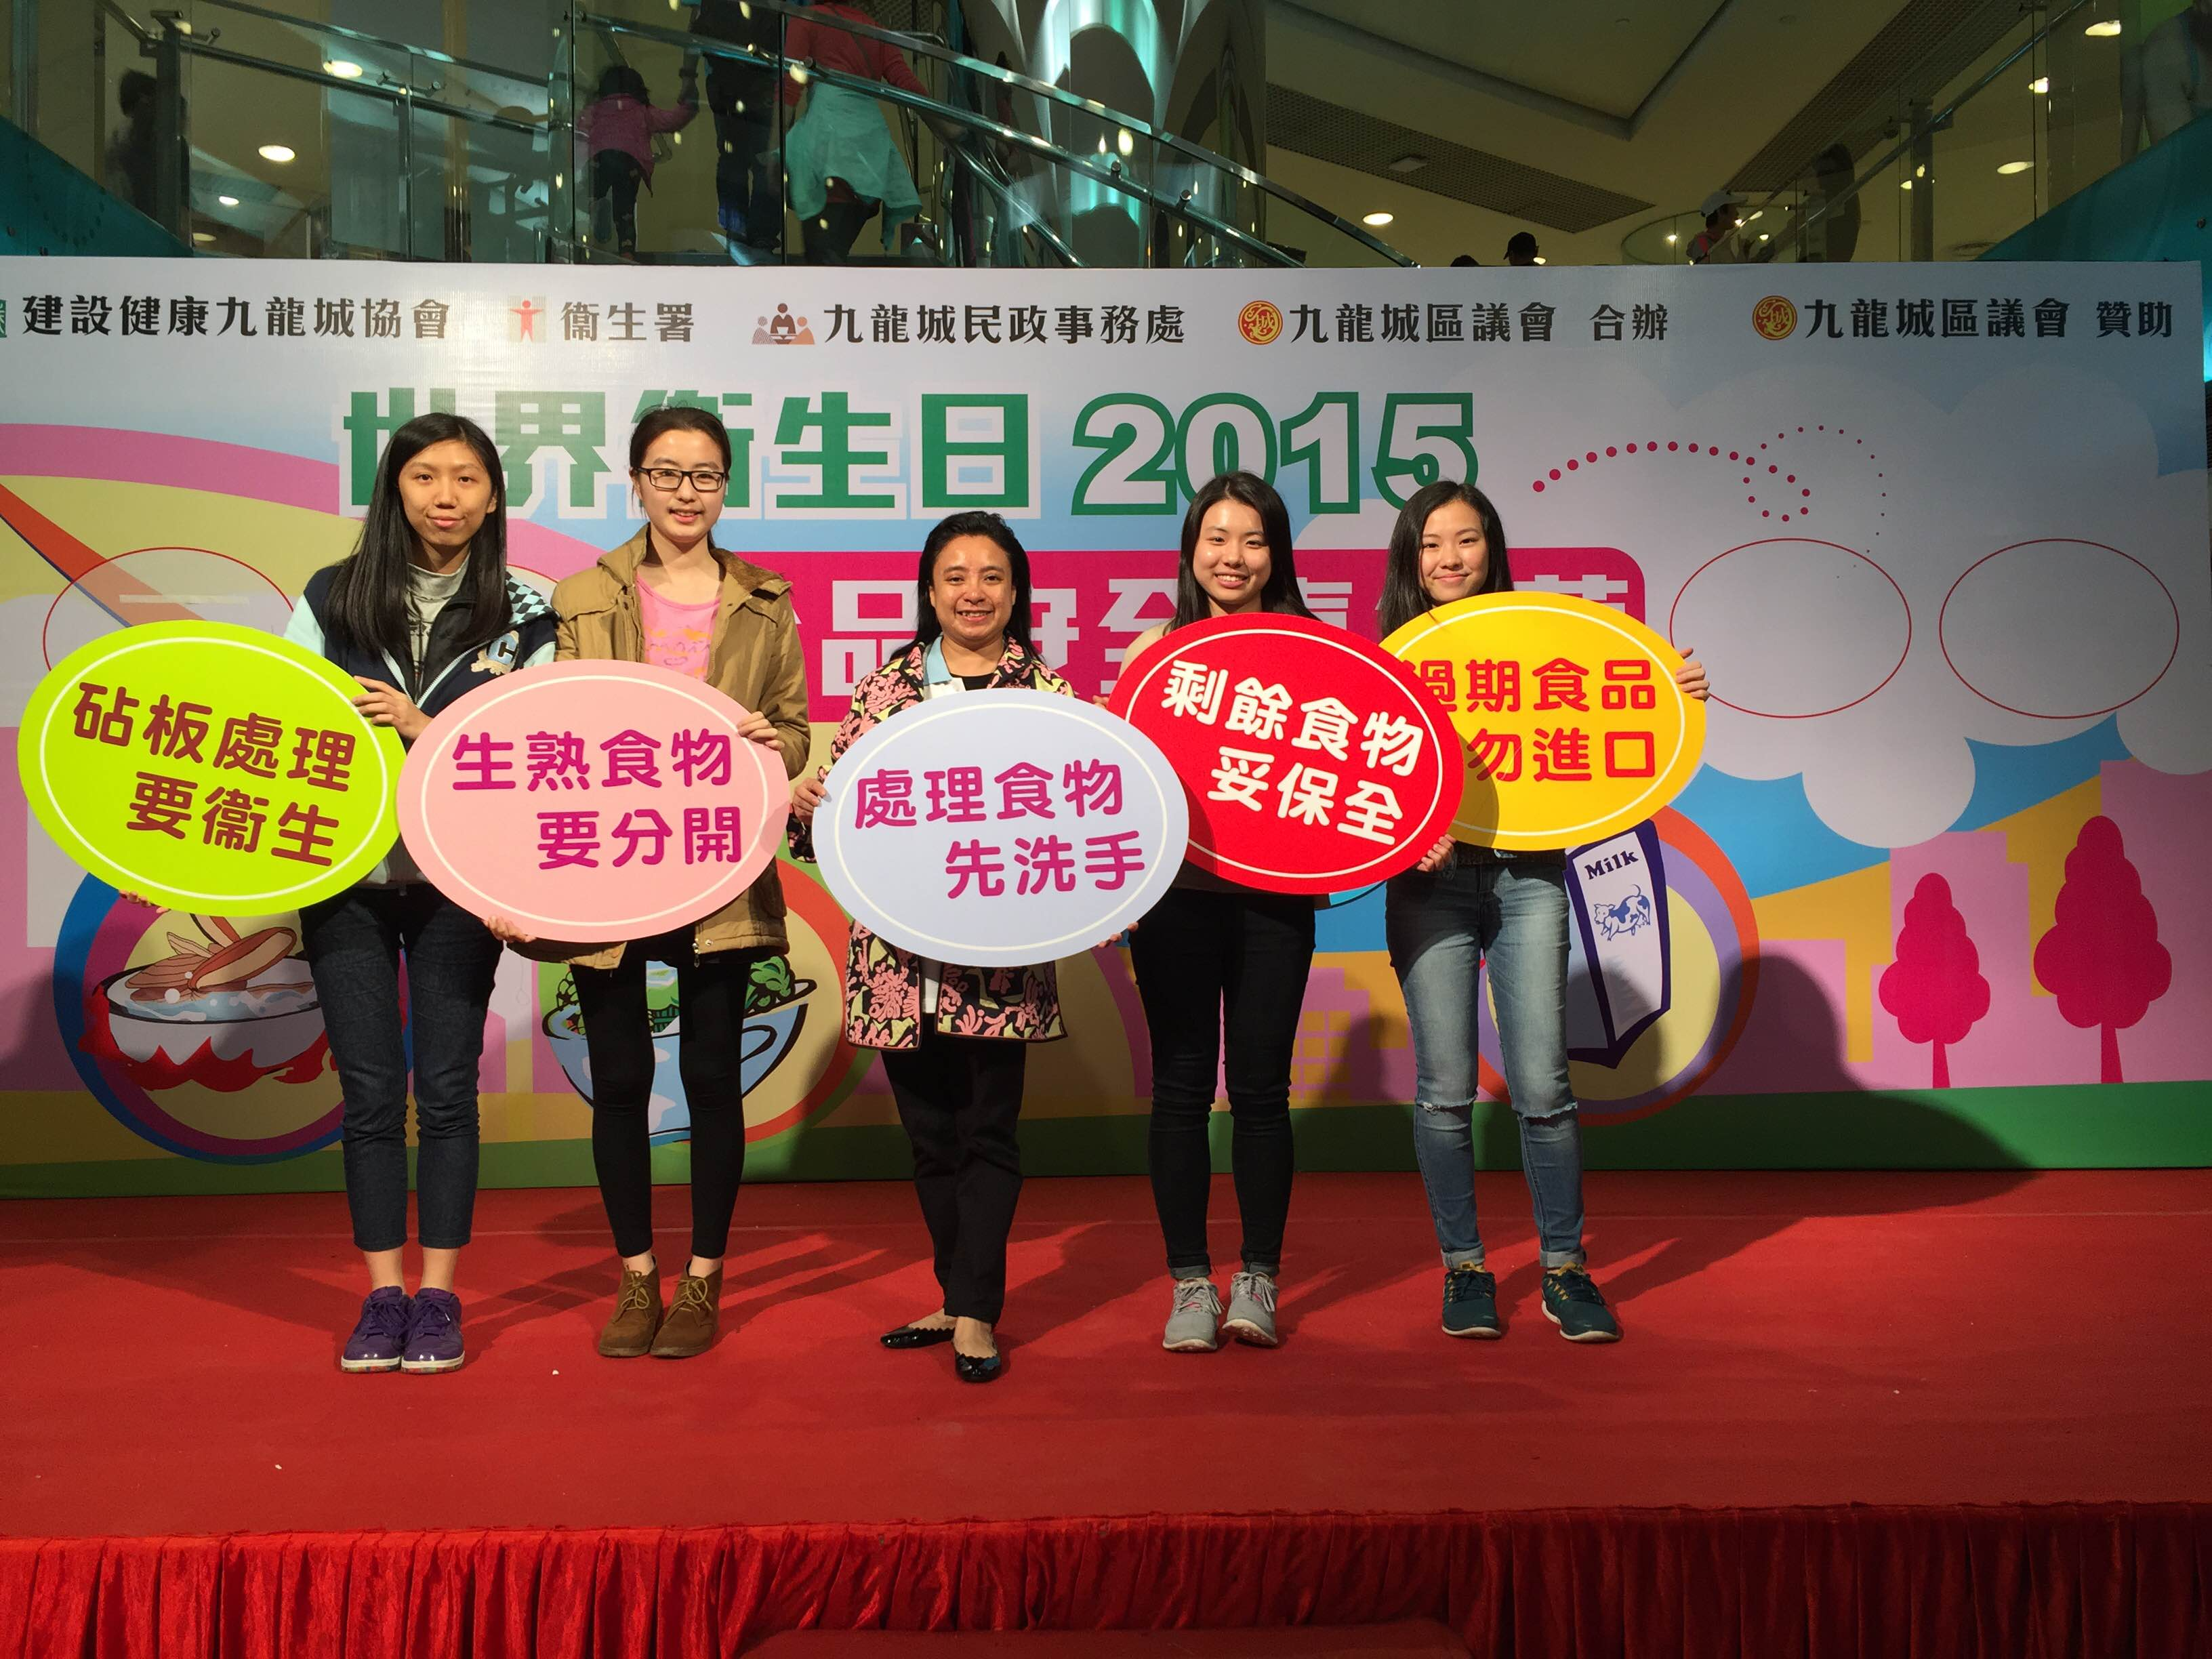 World Health Day Carnival 2015 - Photo - 1